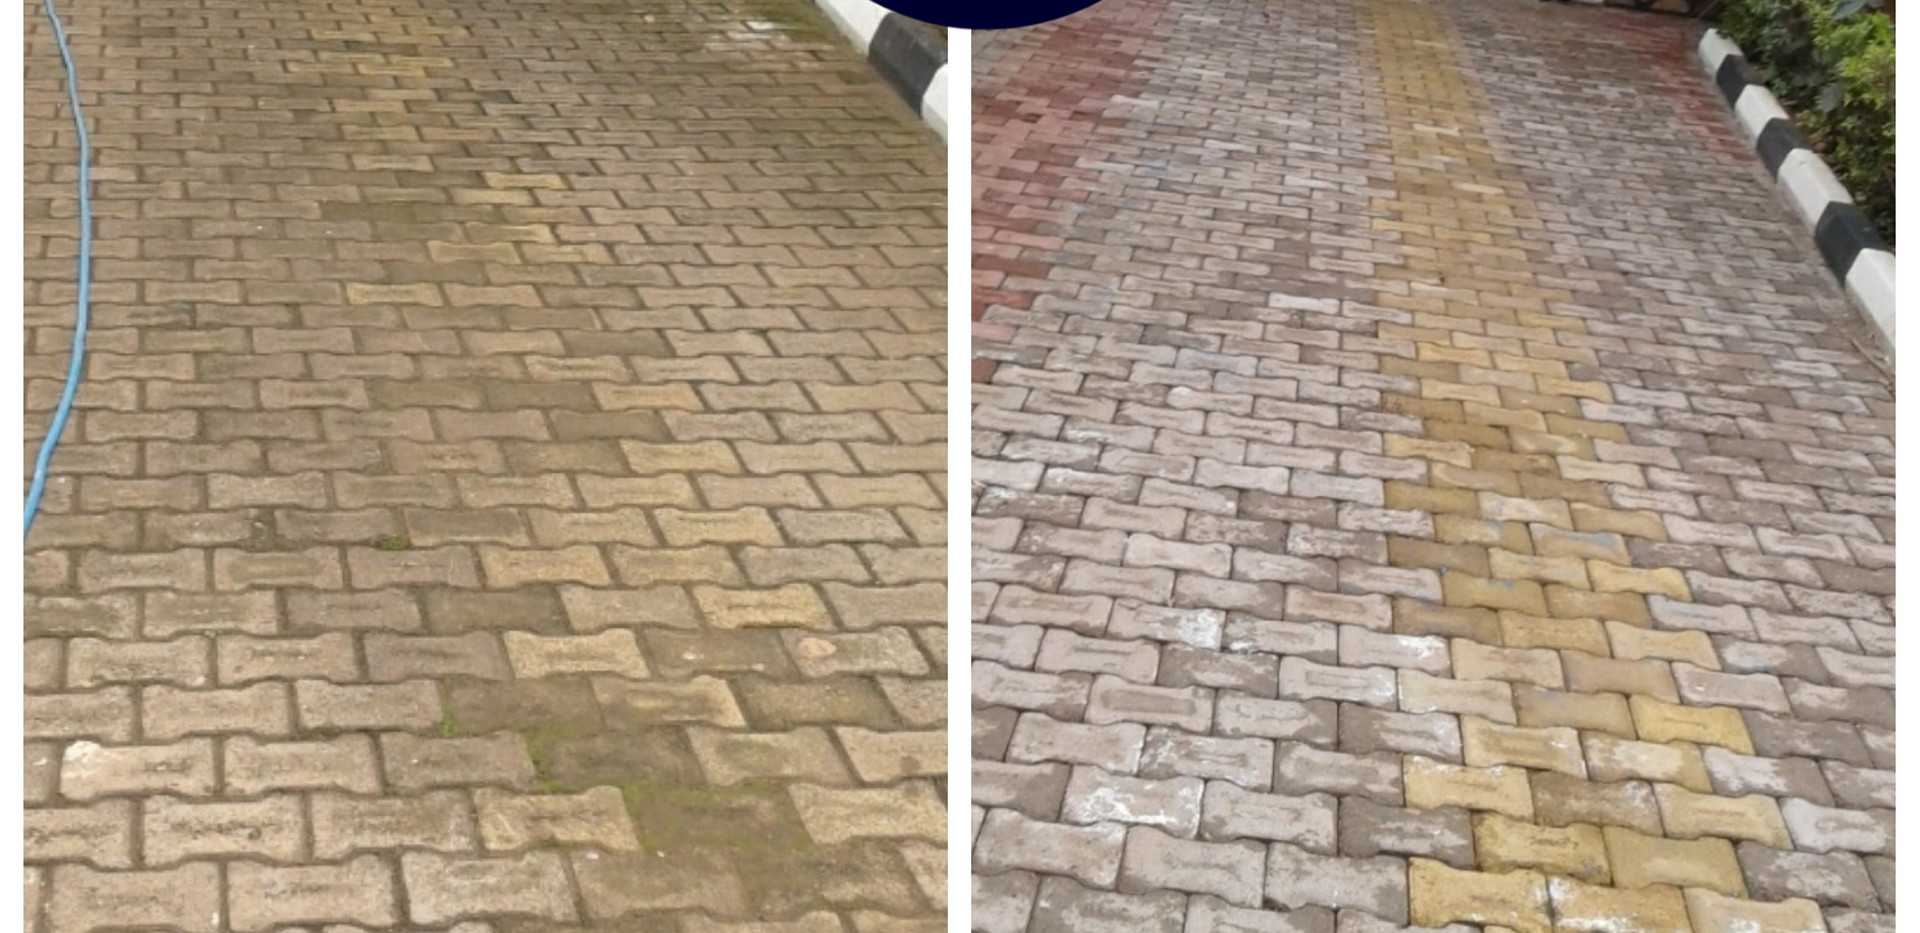 Paver cleaing